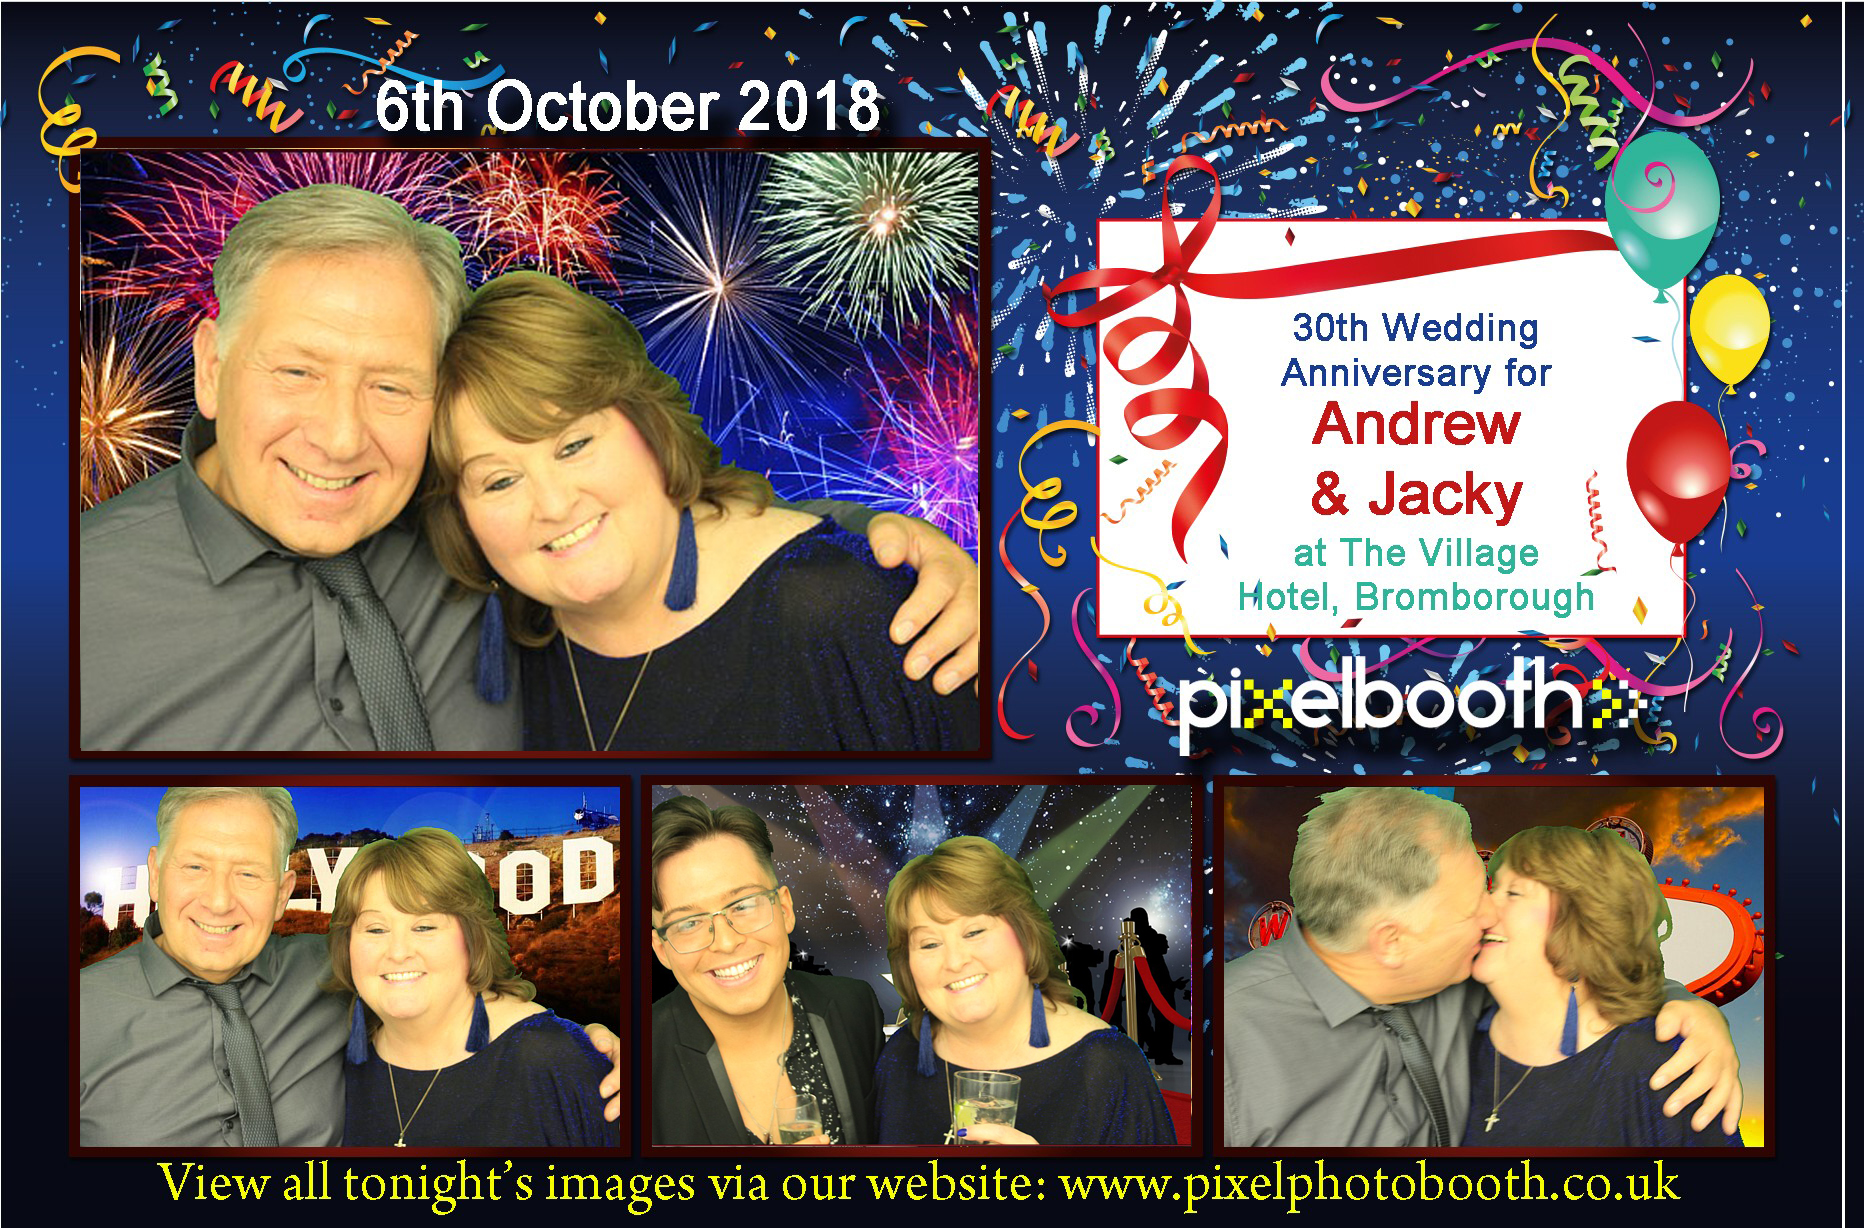 6th Oct 2018: Andrew and Jacky's Wedding anniversary at The Village Hotel